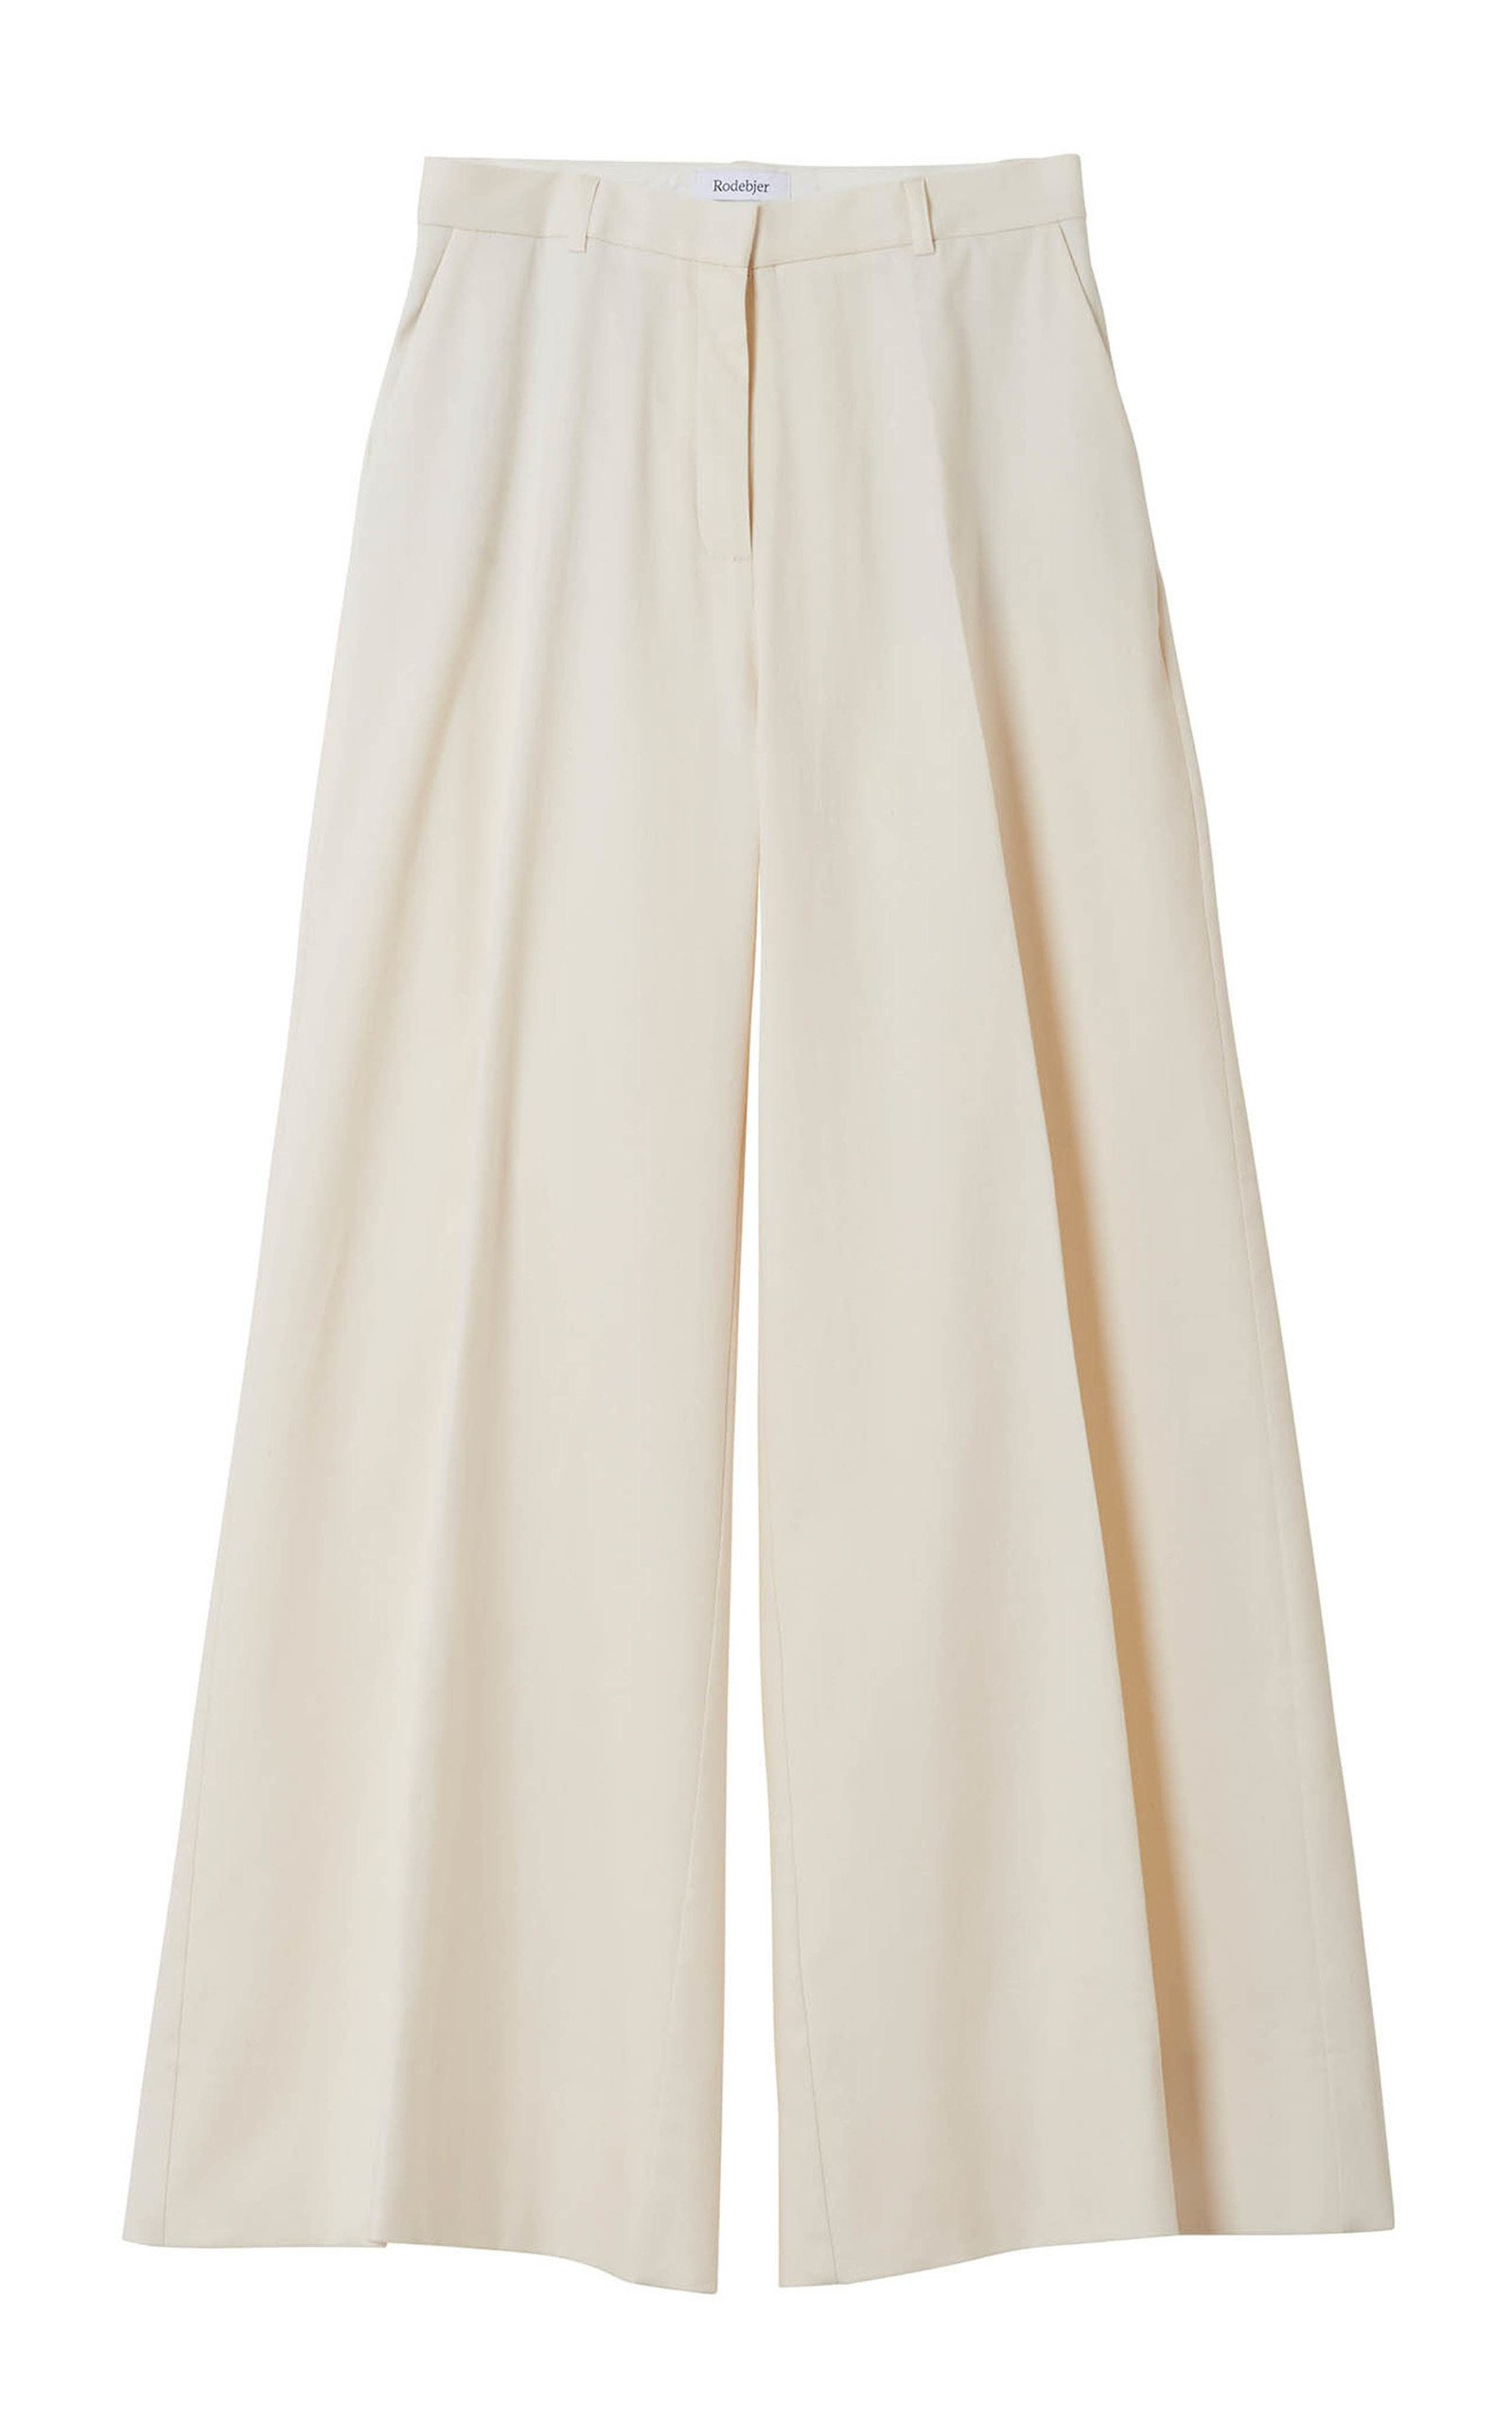 Rodebjer Riad Cotton Wide Leg Pant Size: S